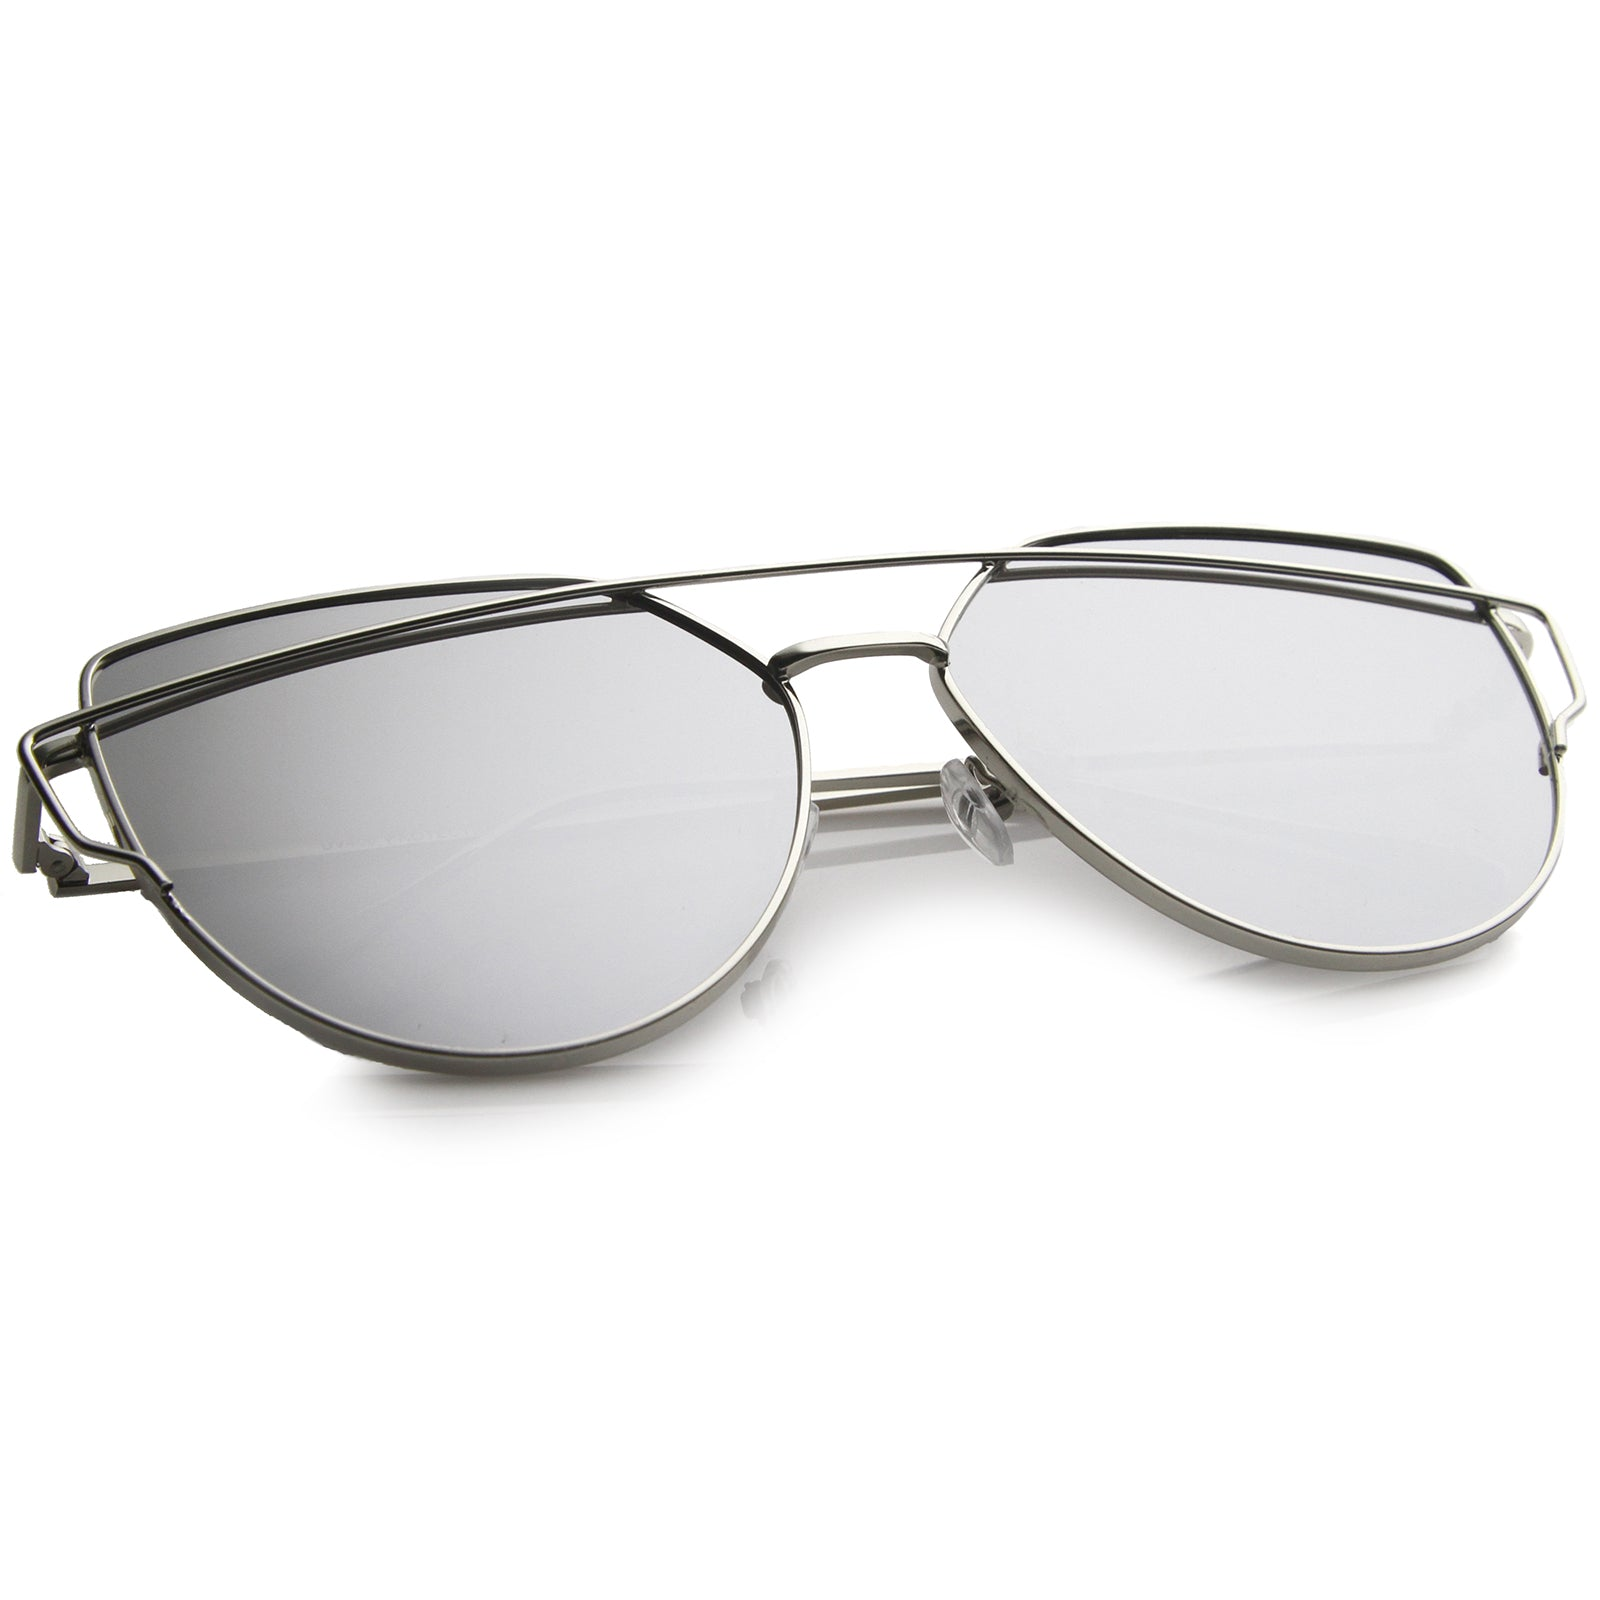 Oversize Metal Frame Thin Temple Color Mirror Flat Lens Aviator Sunglasses 62mm - sunglass.la - 4